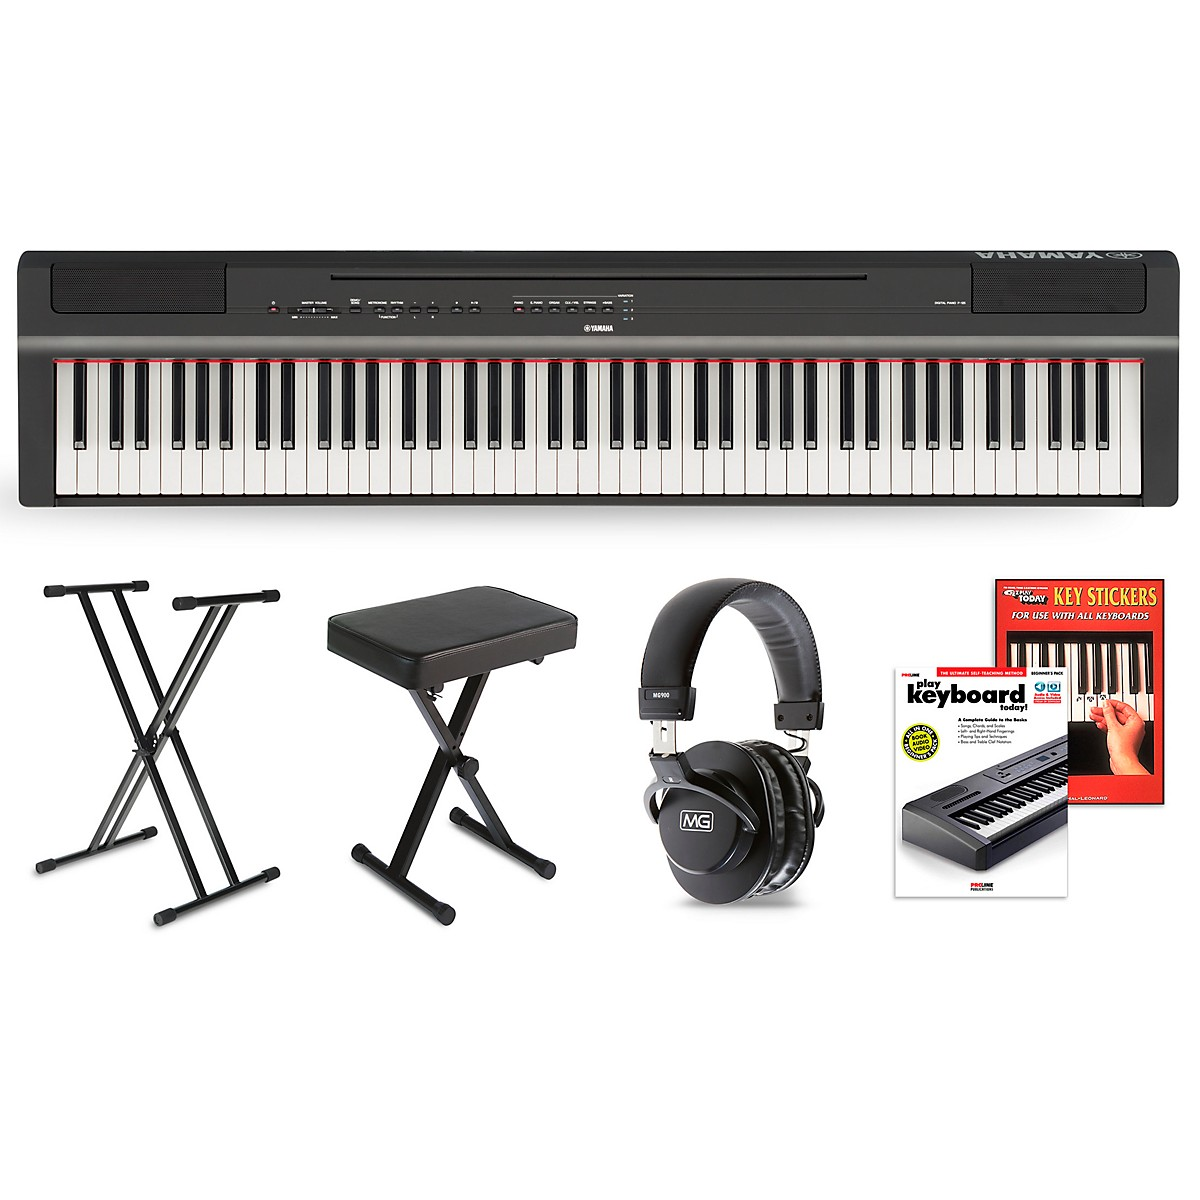 Yamaha P-125 Digital Piano Keyboard Package